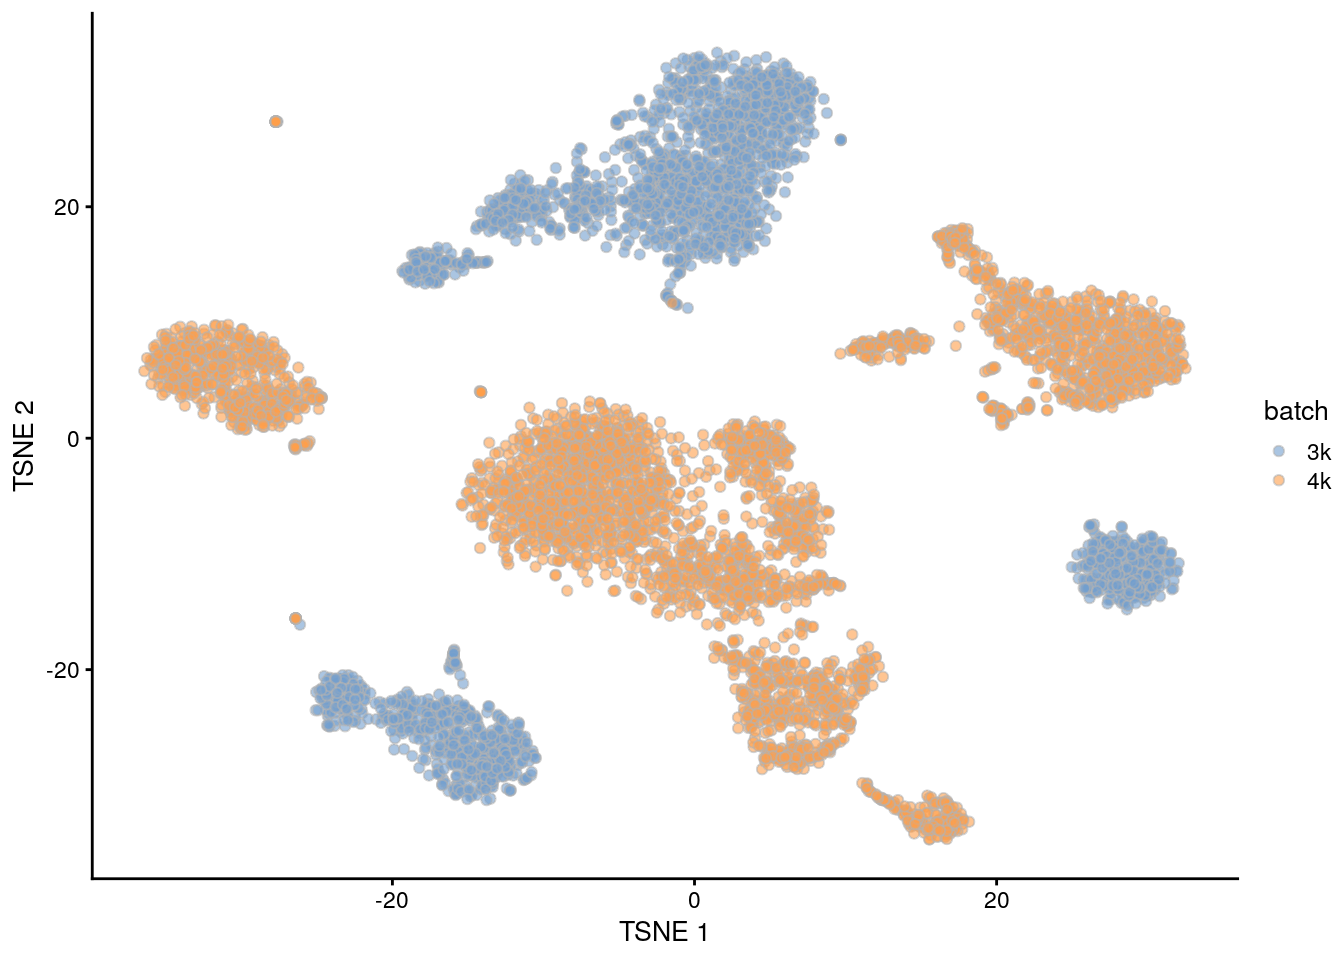 $t$-SNE plot of the PBMC datasets without any batch correction. Each point is a cell that is colored according to its batch of origin.